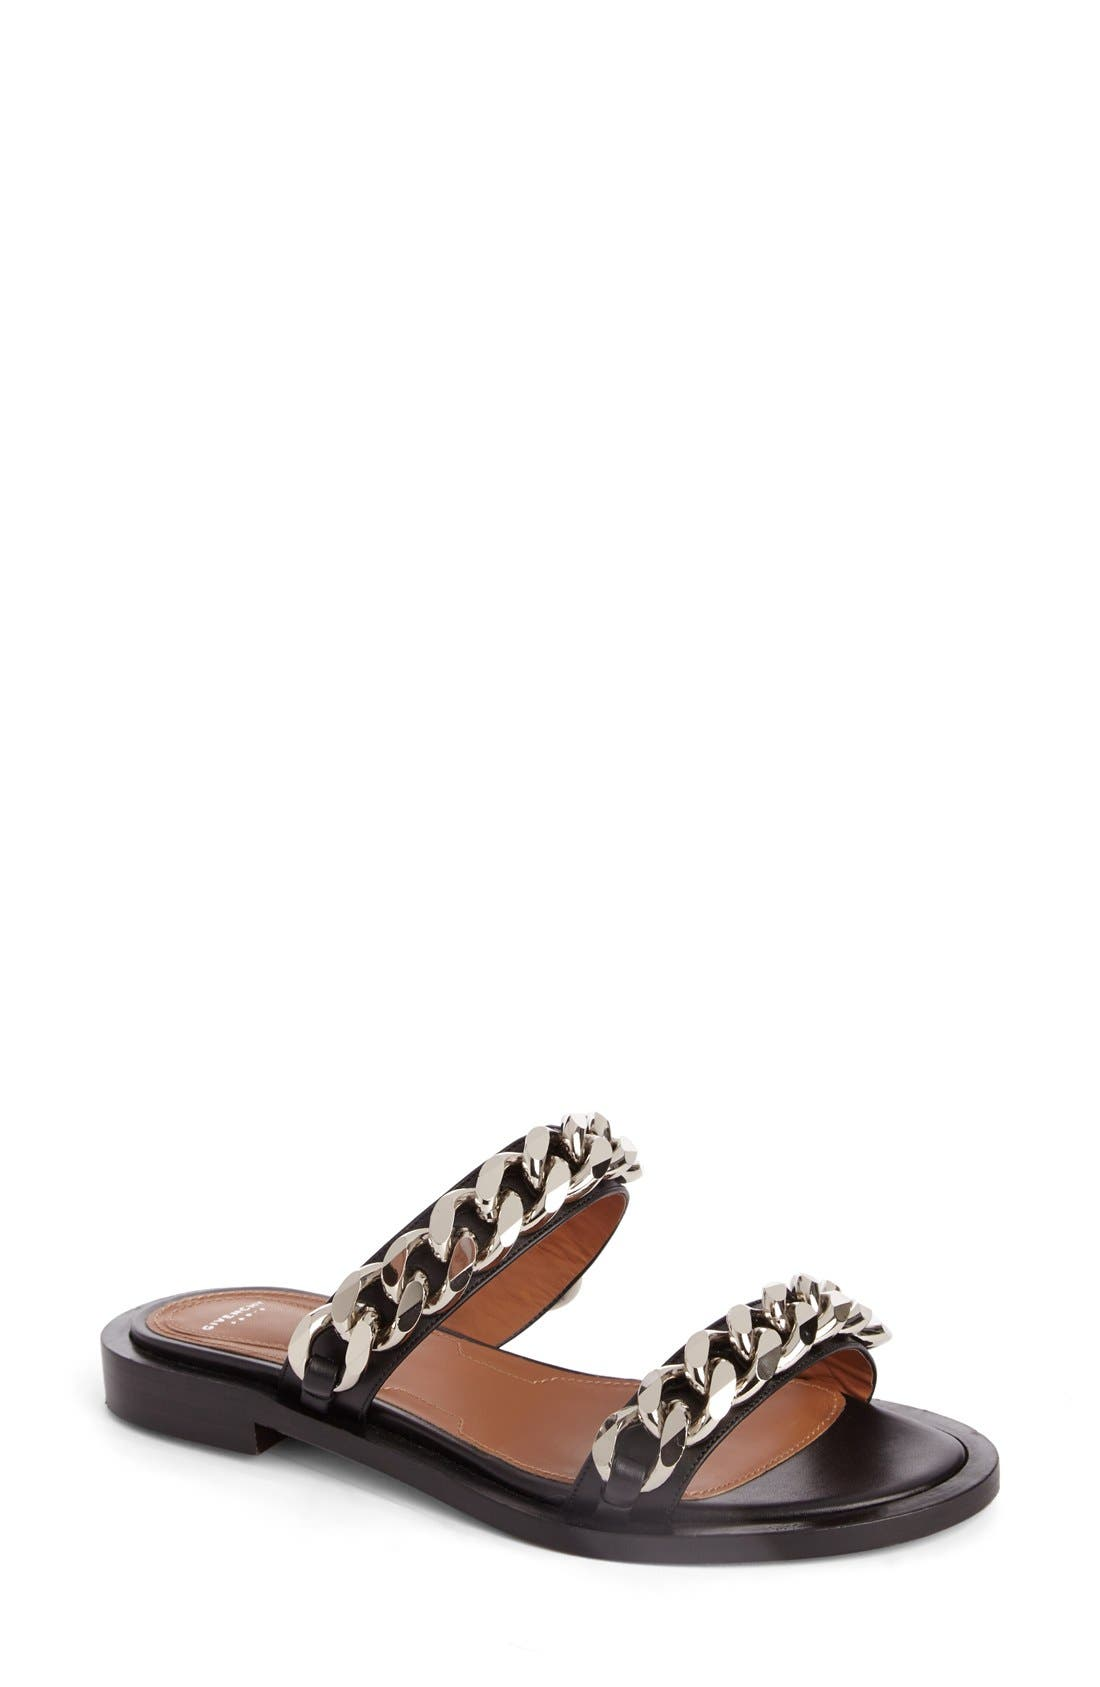 Alternate Image 1 Selected - Givenchy Double Chain Slide Sandal (Women)